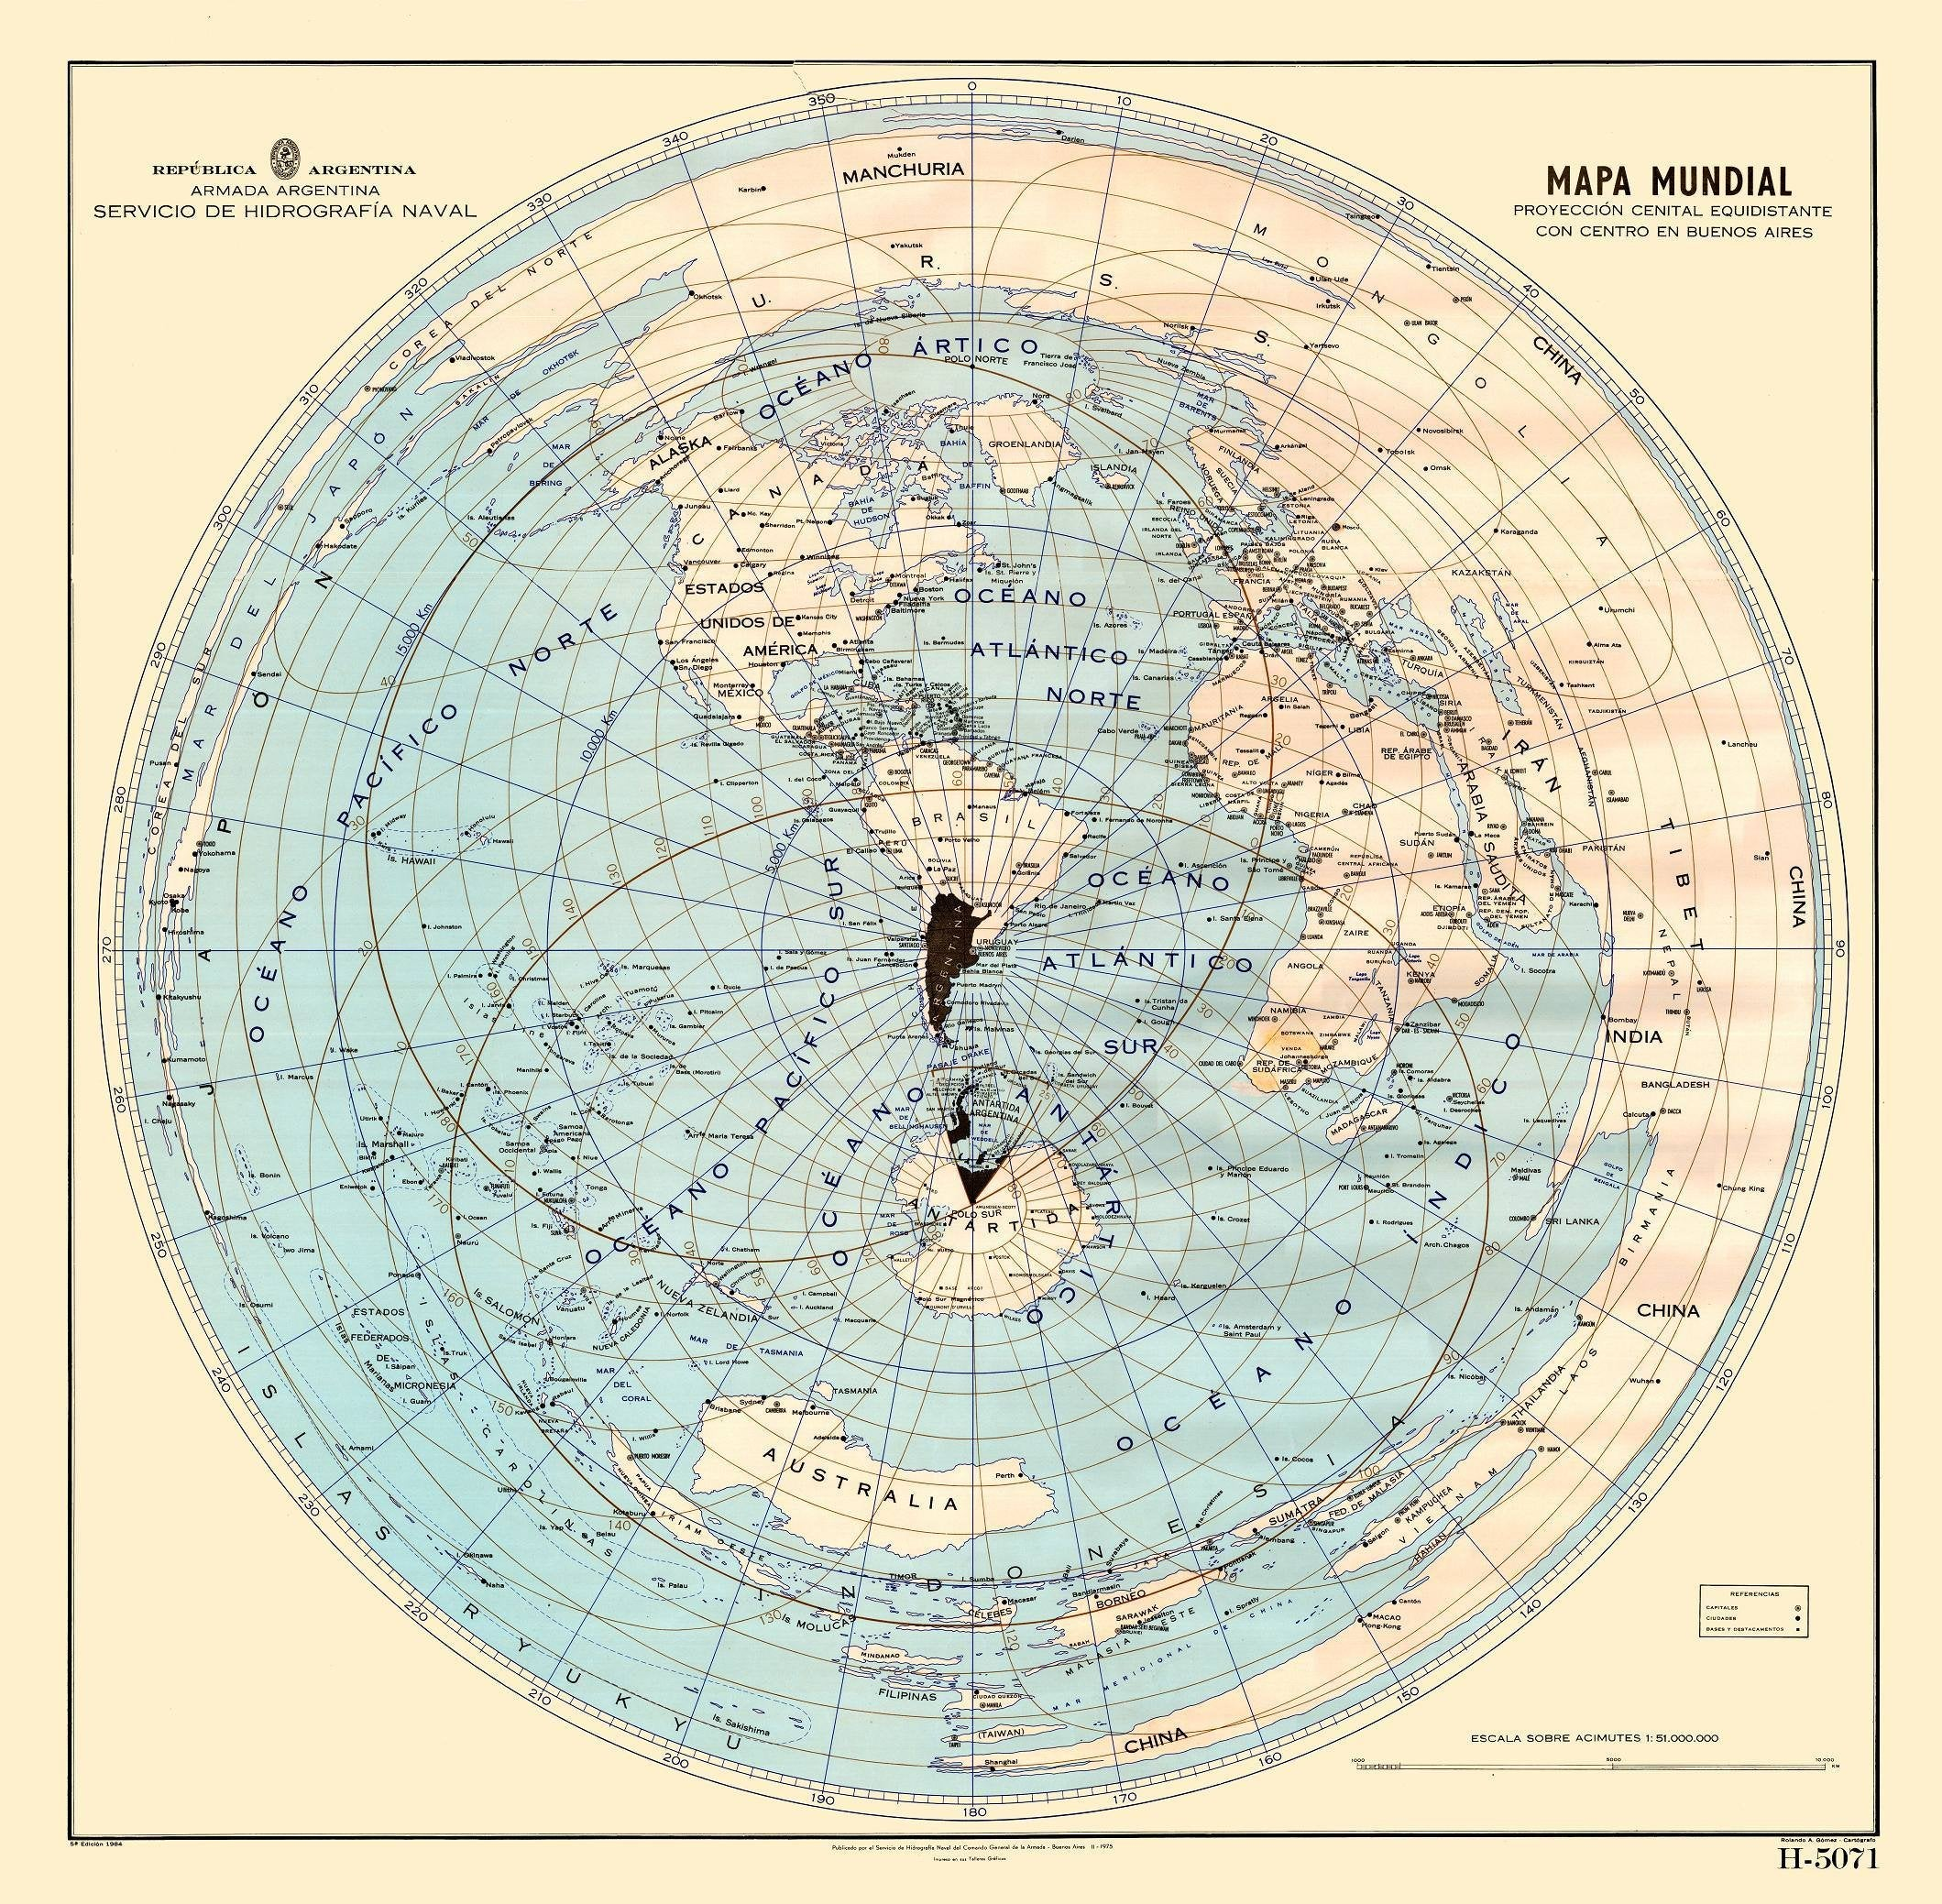 Mapa mundial Buenos Aires World Map azimuthal equidistant projection